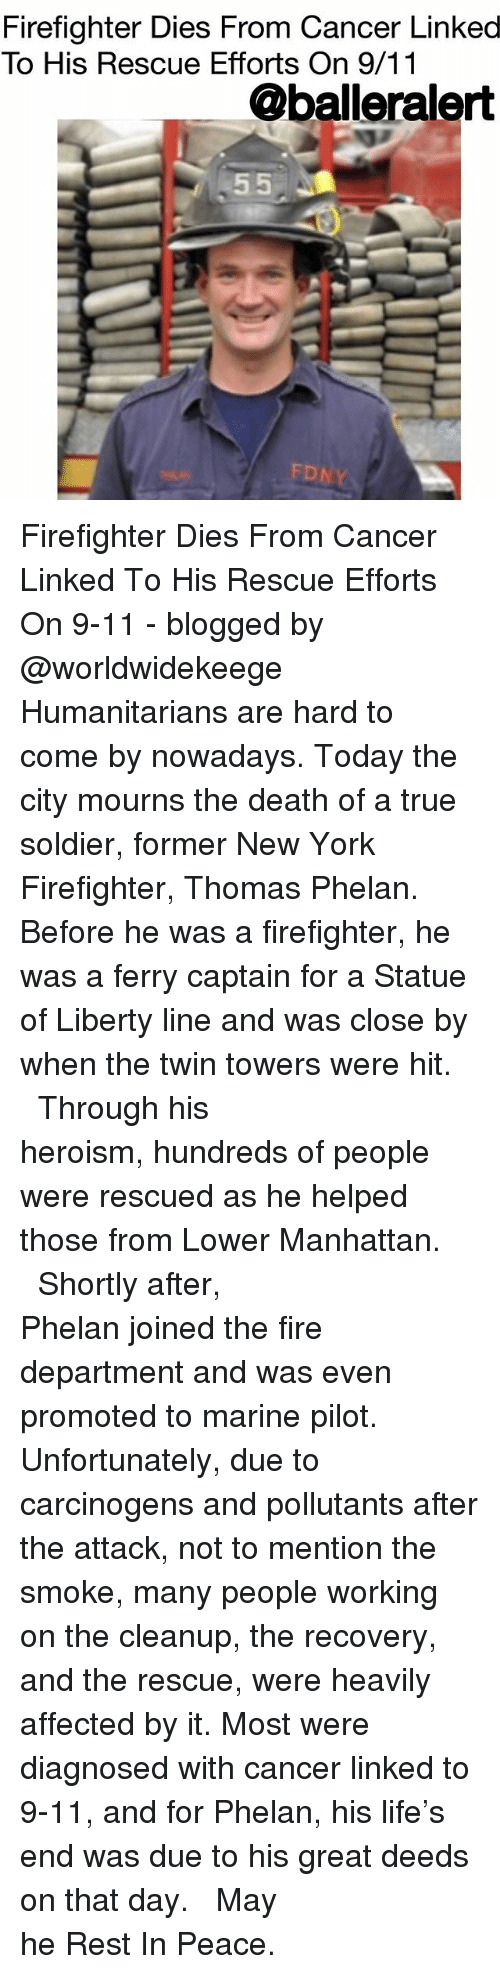 Statue of Liberty: Firefighter Dies From Cancer Linked  To His Rescue Efforts On 9/11  @balleralert  FD Firefighter Dies From Cancer Linked To His Rescue Efforts On 9-11 - blogged by @worldwidekeege ⠀⠀⠀⠀⠀⠀⠀⠀⠀ ⠀⠀⠀⠀⠀⠀⠀⠀⠀ Humanitarians are hard to come by nowadays. Today the city mourns the death of a true soldier, former New York Firefighter, Thomas Phelan. Before he was a firefighter, he was a ferry captain for a Statue of Liberty line and was close by when the twin towers were hit. ⠀⠀⠀⠀⠀⠀⠀⠀⠀ ⠀⠀⠀⠀⠀⠀⠀⠀⠀ Through his heroism, hundreds of people were rescued as he helped those from Lower Manhattan. ⠀⠀⠀⠀⠀⠀⠀⠀⠀ ⠀⠀⠀⠀⠀⠀⠀⠀⠀ Shortly after, Phelan joined the fire department and was even promoted to marine pilot. Unfortunately, due to carcinogens and pollutants after the attack, not to mention the smoke, many people working on the cleanup, the recovery, and the rescue, were heavily affected by it. Most were diagnosed with cancer linked to 9-11, and for Phelan, his life's end was due to his great deeds on that day. ⠀⠀⠀⠀⠀⠀⠀⠀⠀ ⠀⠀⠀⠀⠀⠀⠀⠀⠀ May he Rest In Peace.